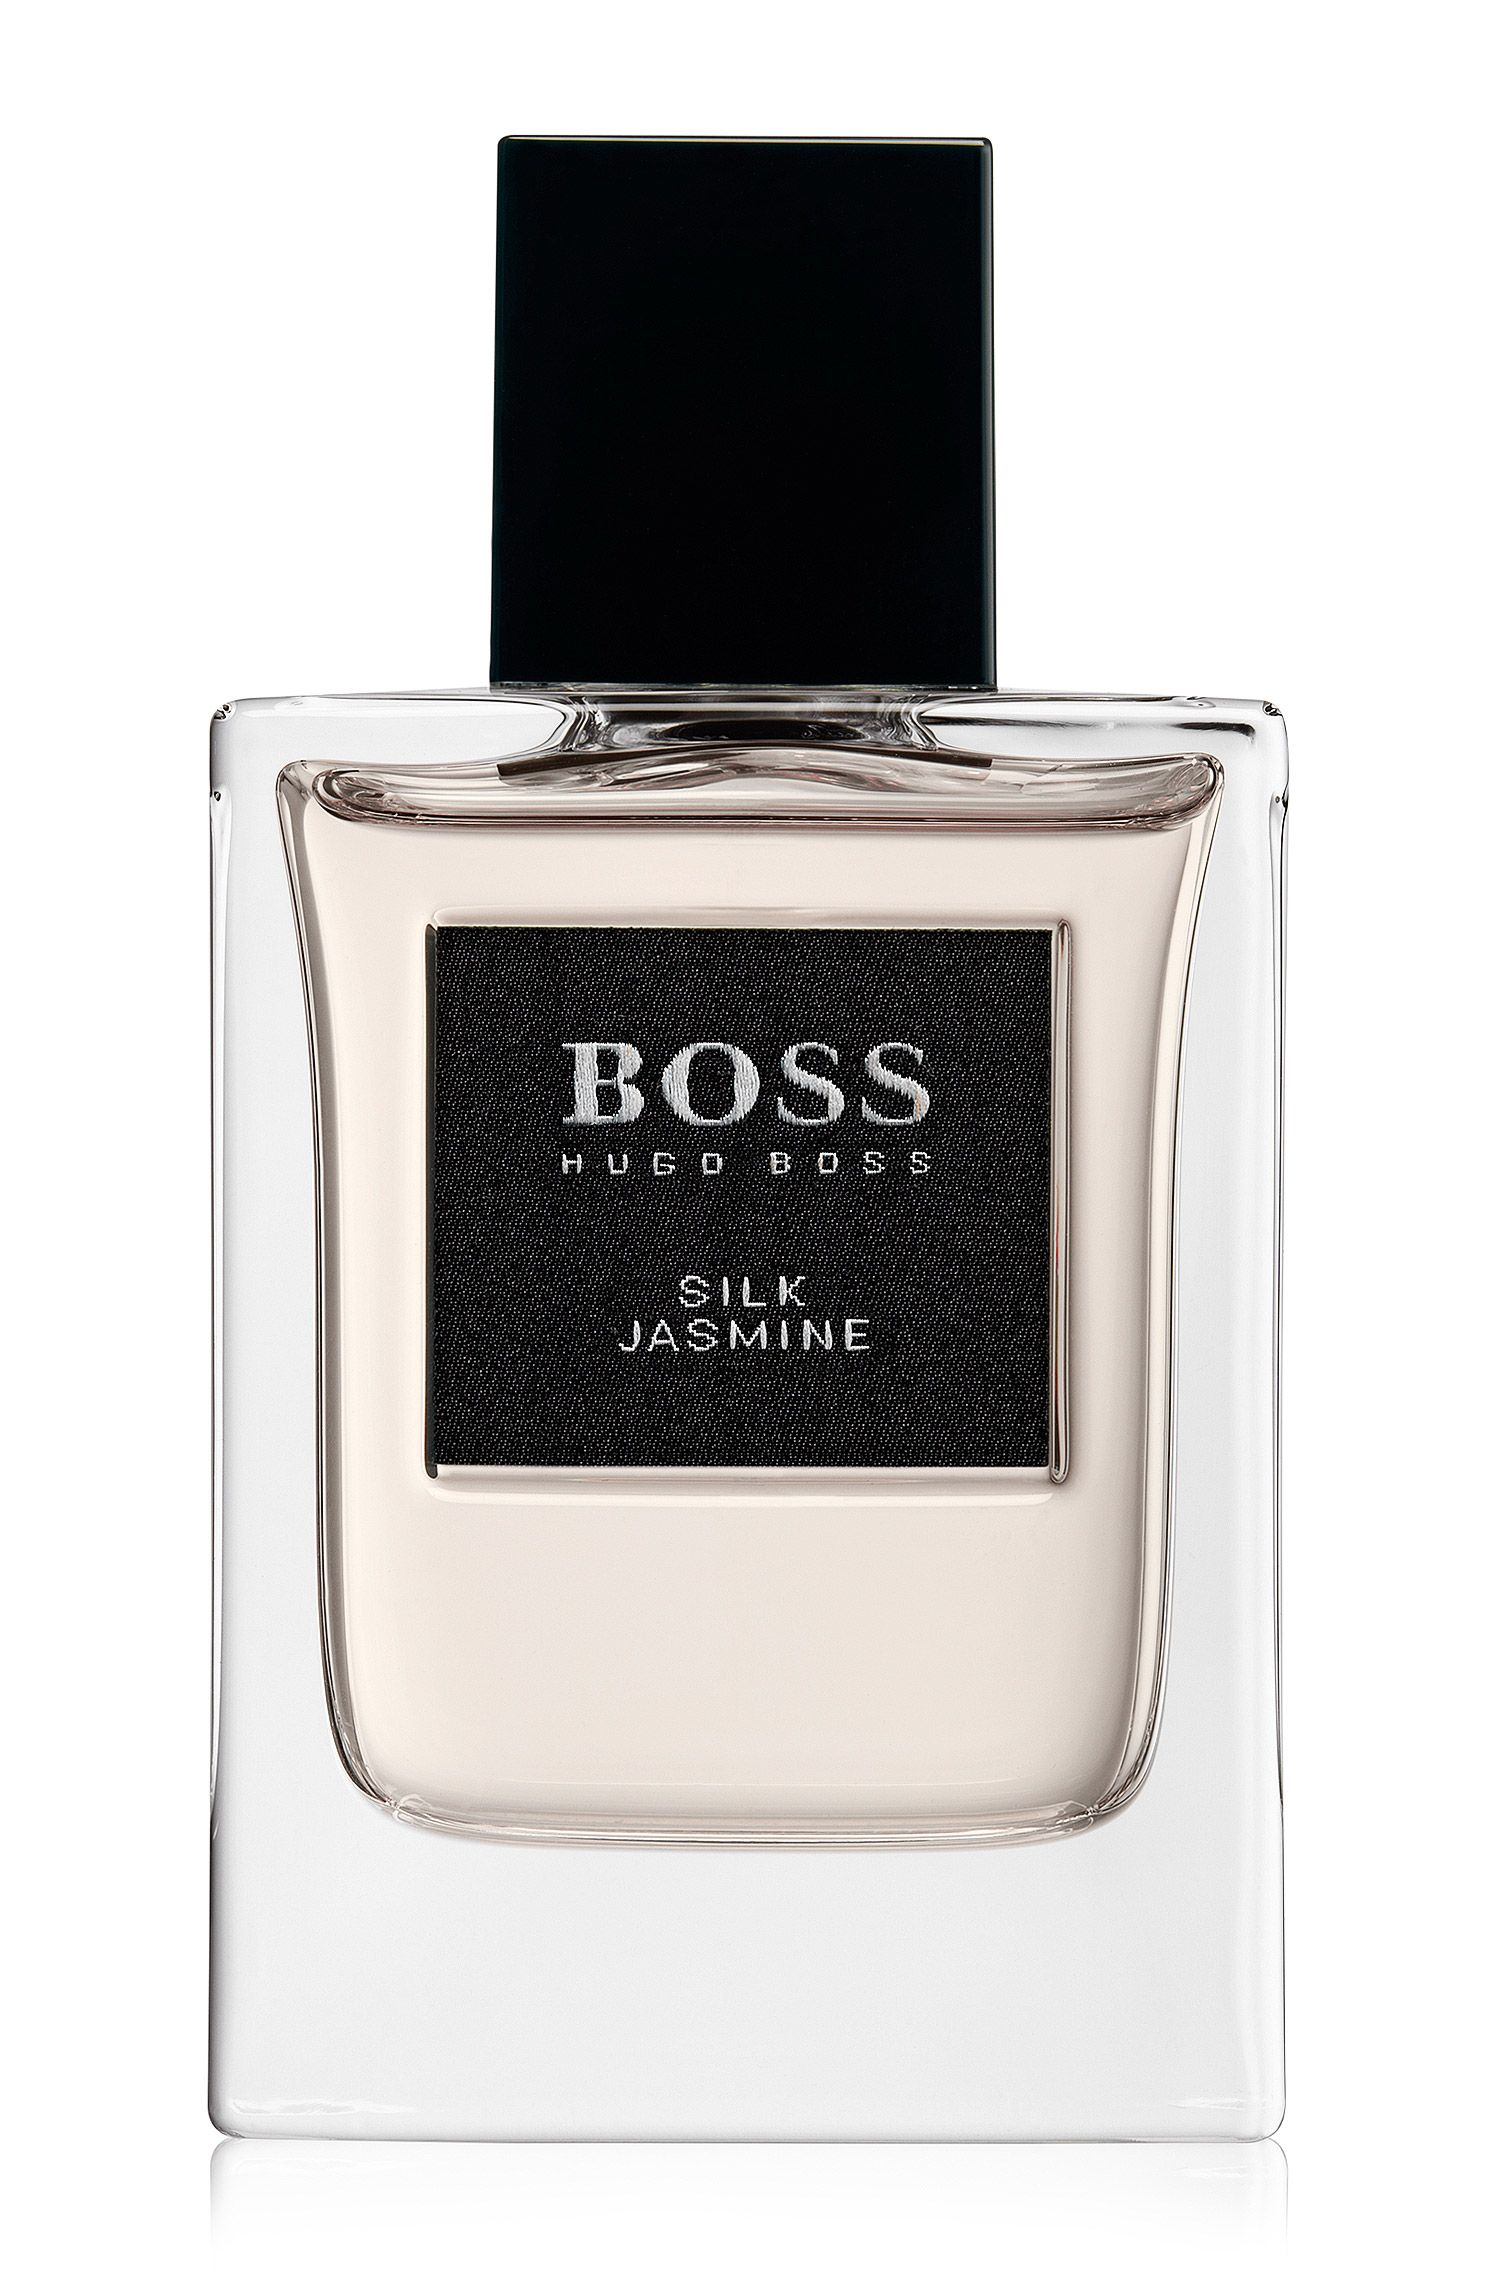 BOSS The Collection - Silk Jasmine Eau de Parfum